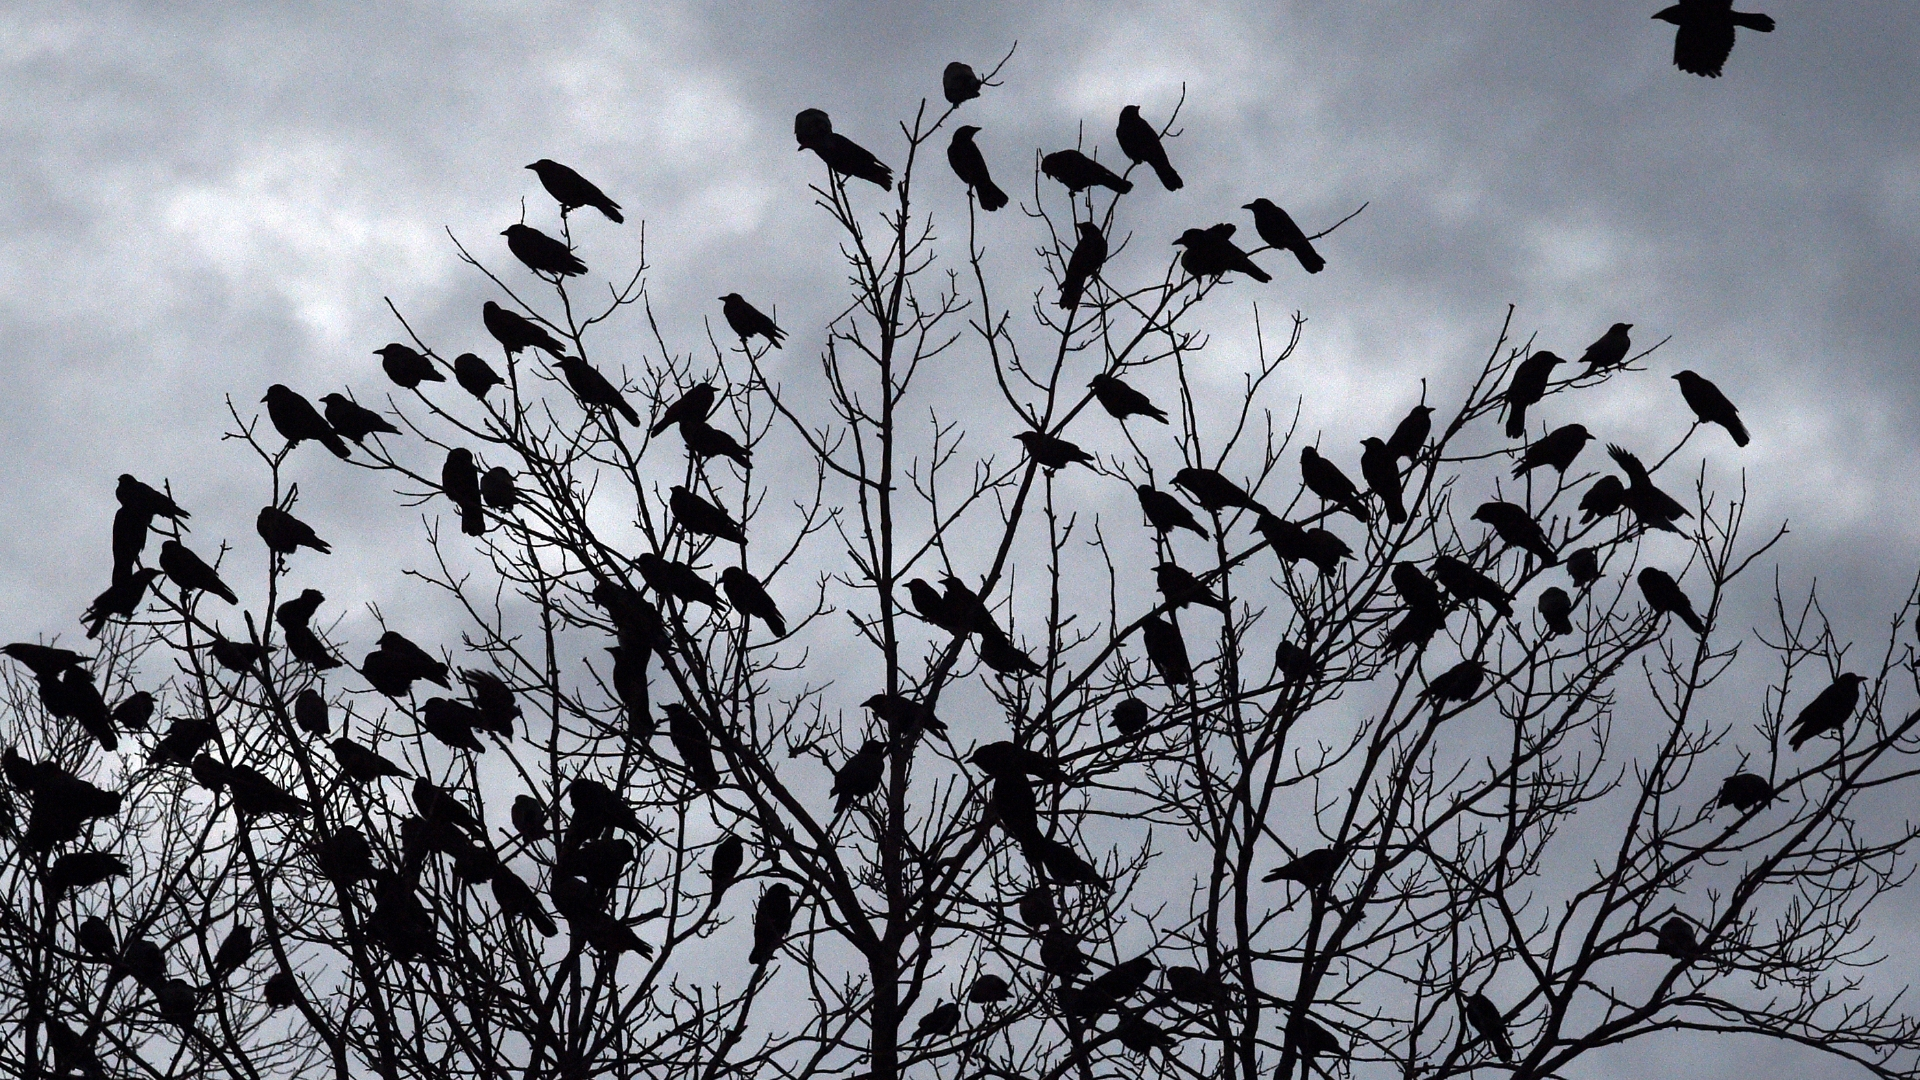 Thousands of crows have descended on Hartford for a spooky, noisy and  mysterious 'winter roost;' here's why - Hartford Courant